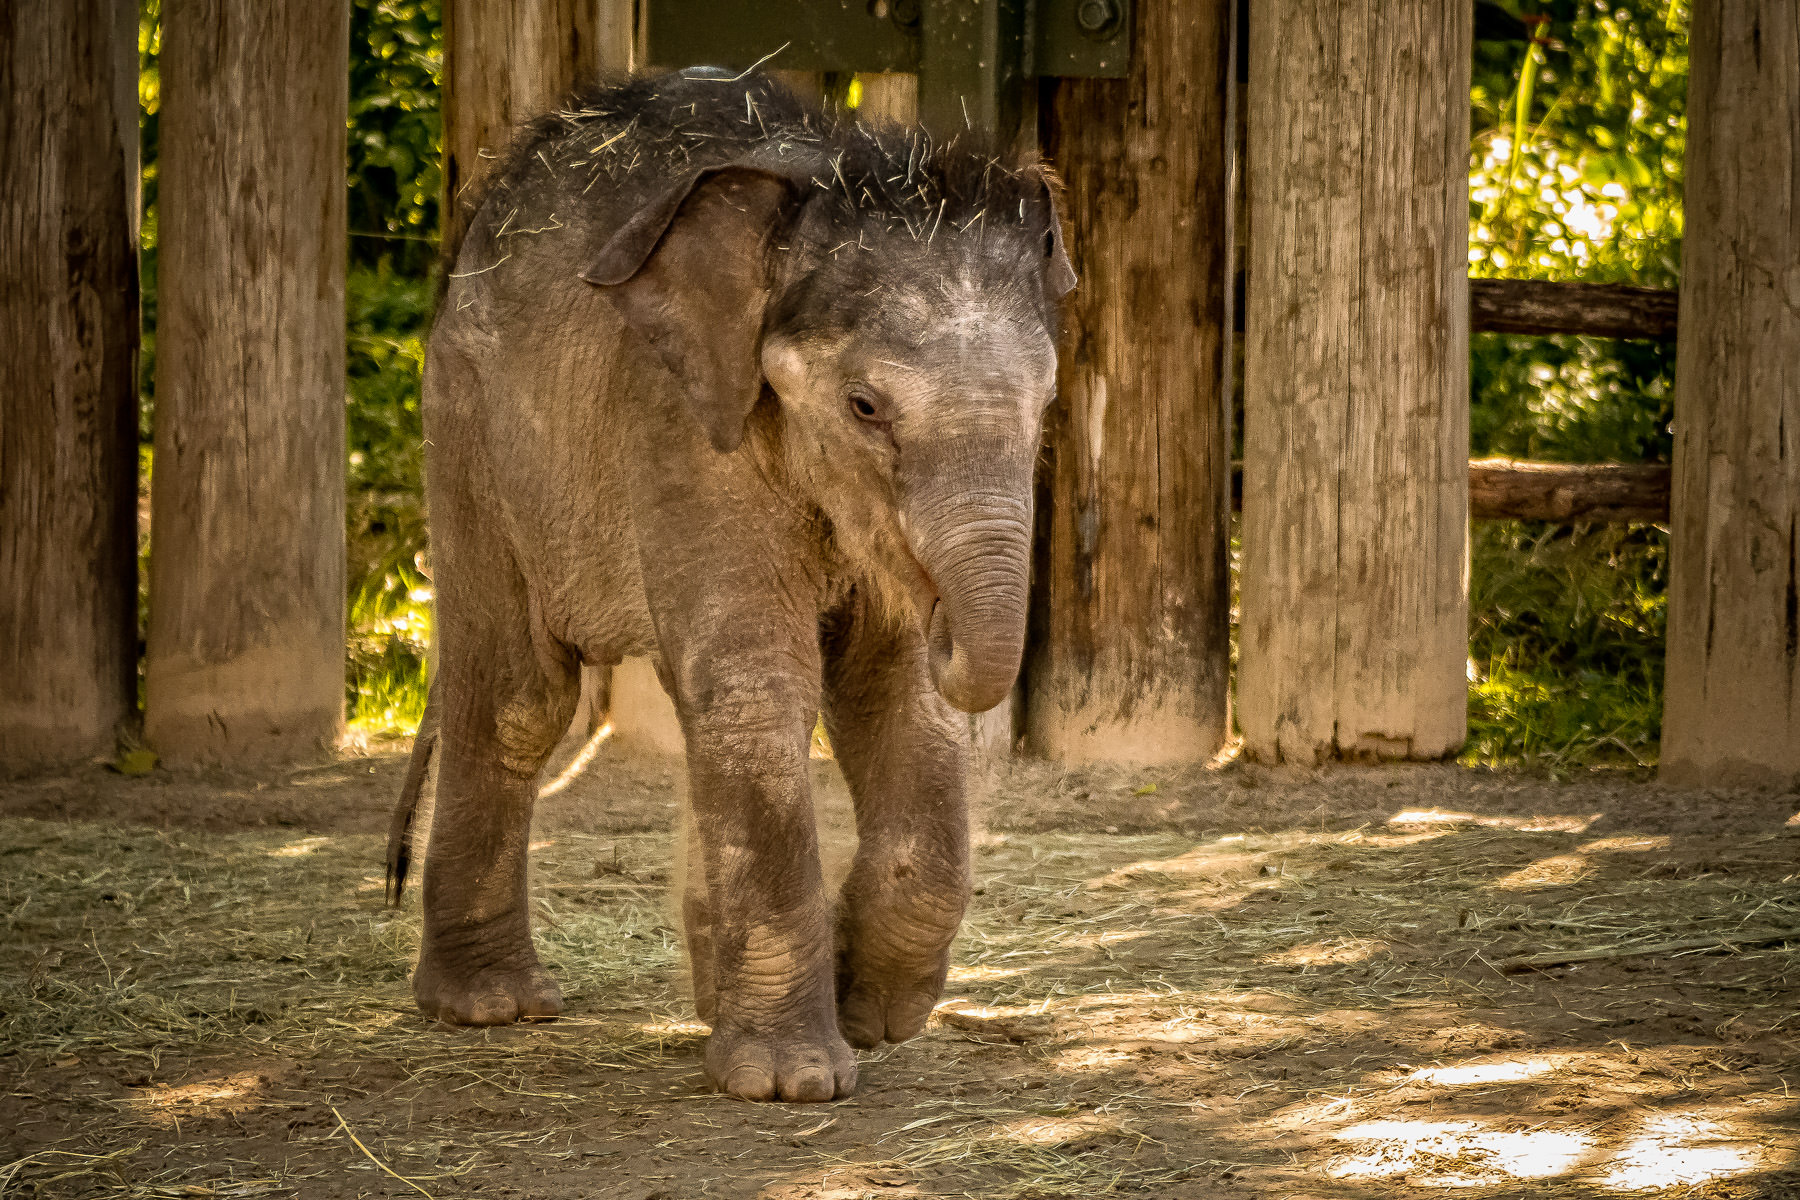 A newborn elephant at the Fort Worth Zoo, Fort Worth, Texas.